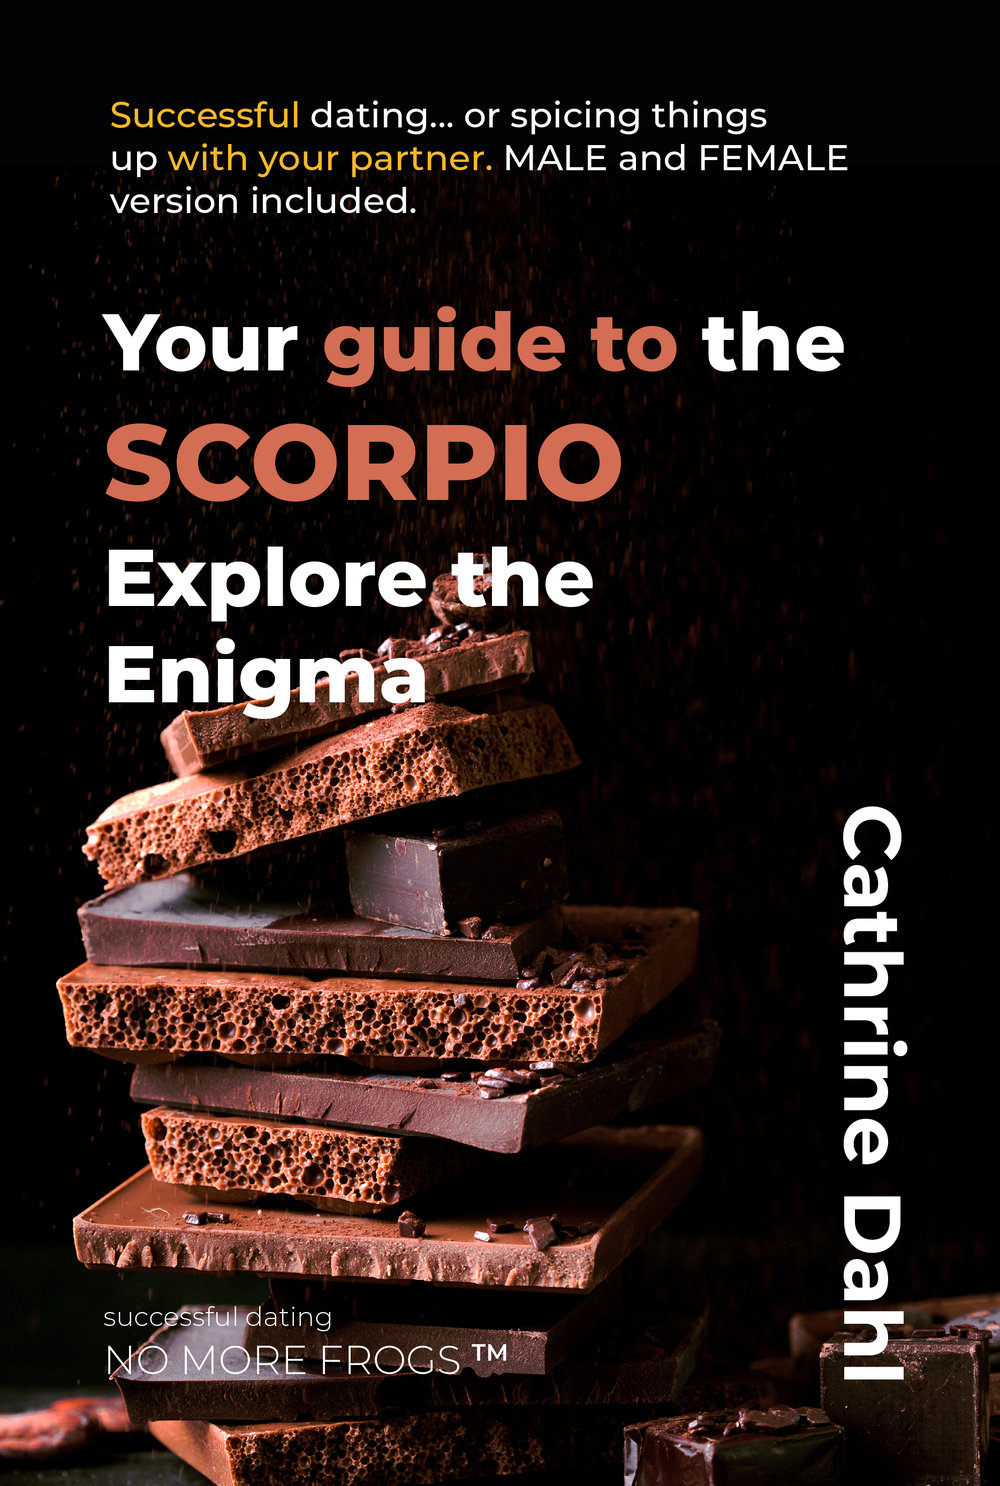 08_scorpio_ebook_cover_190126.jpg